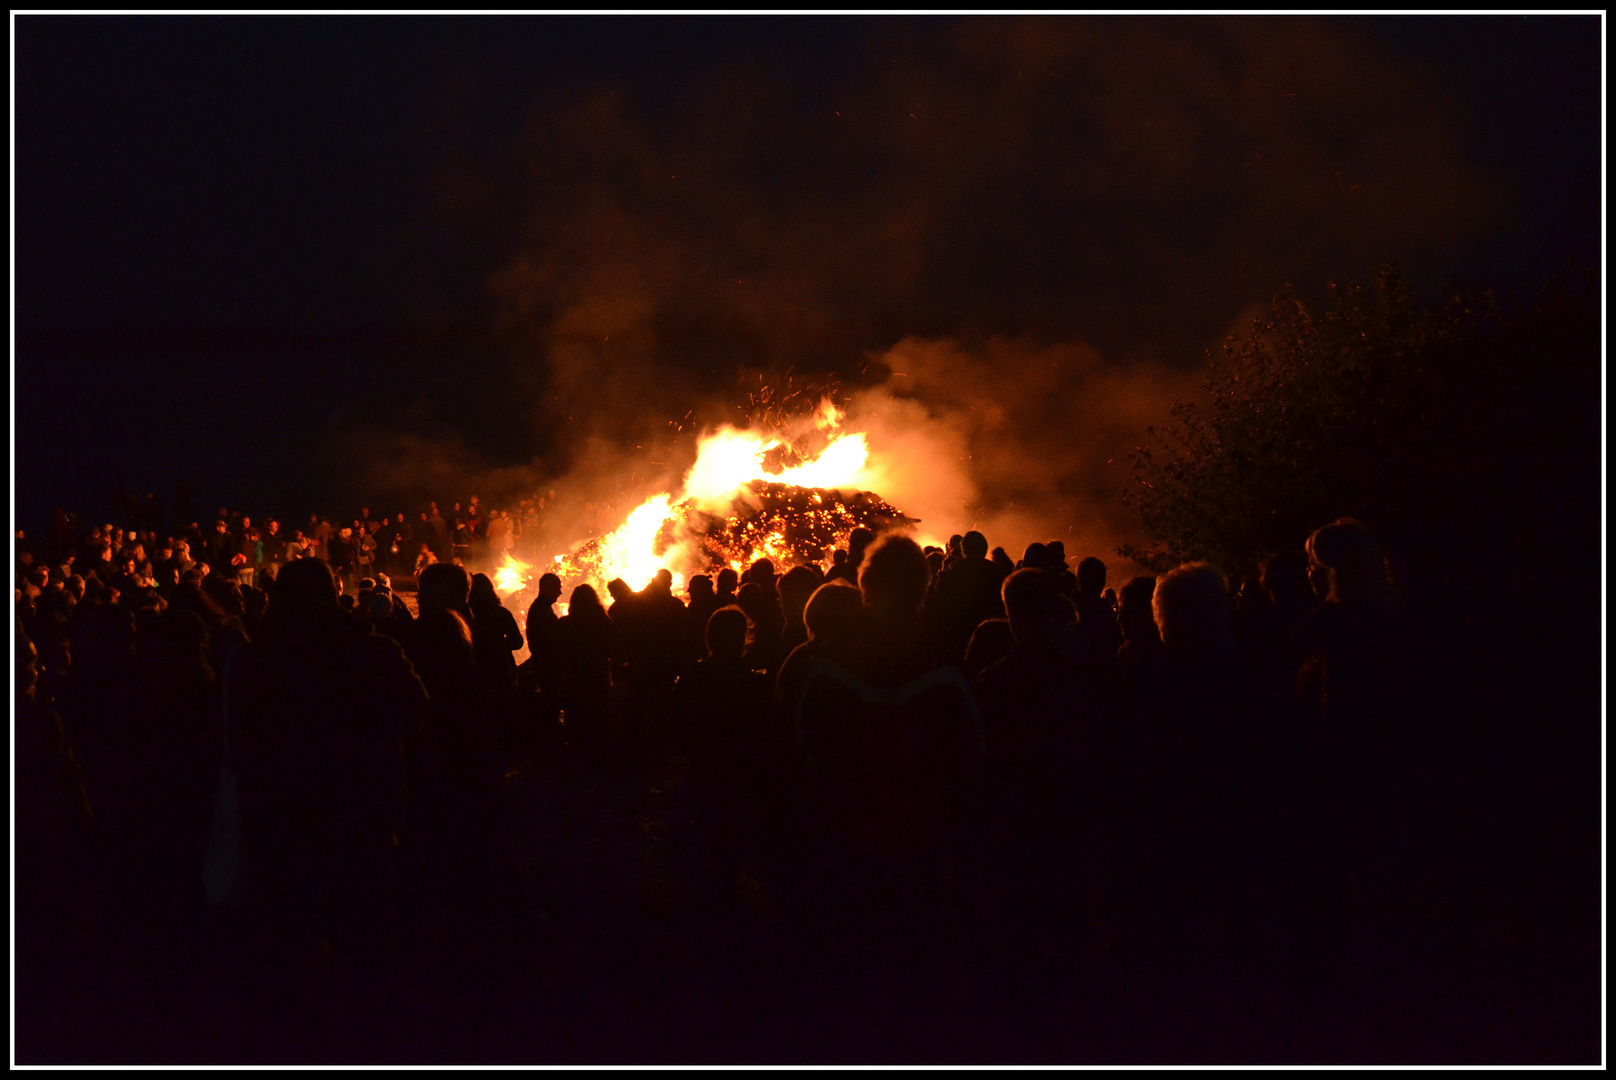 """ Osterfeuer am Elbstrand """